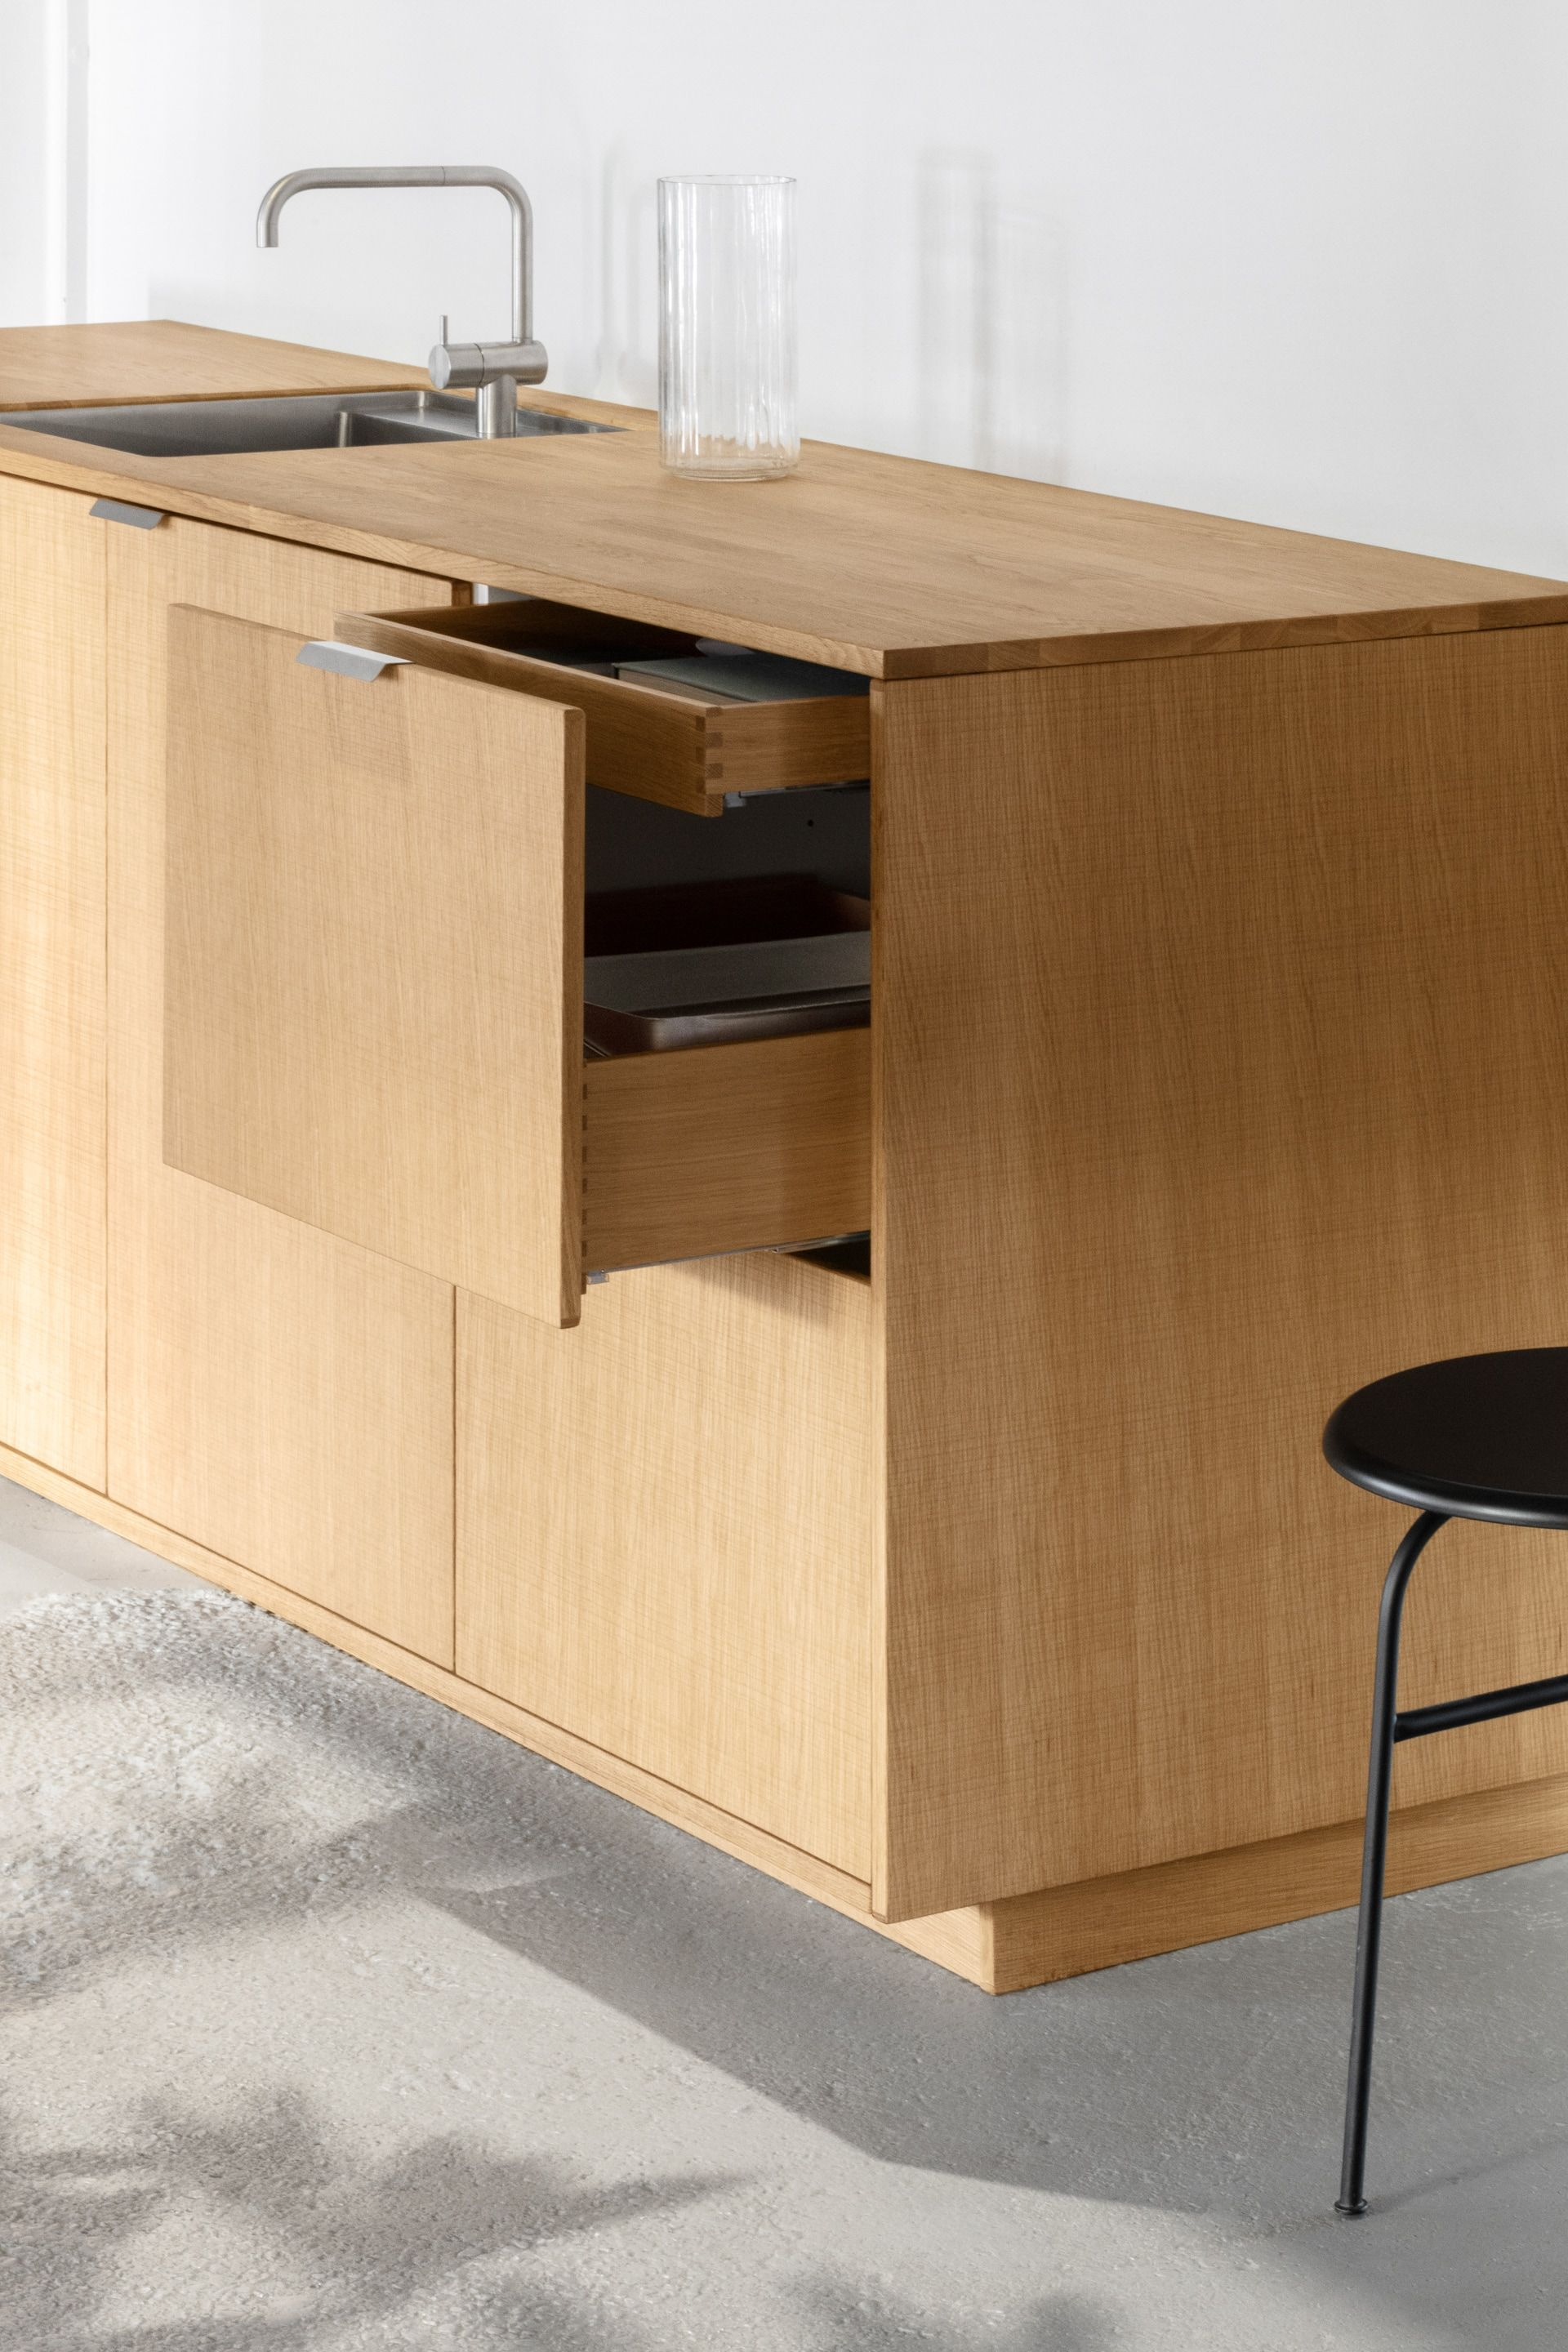 Reform's kitchen wood drawers in solid natural oak, smoked